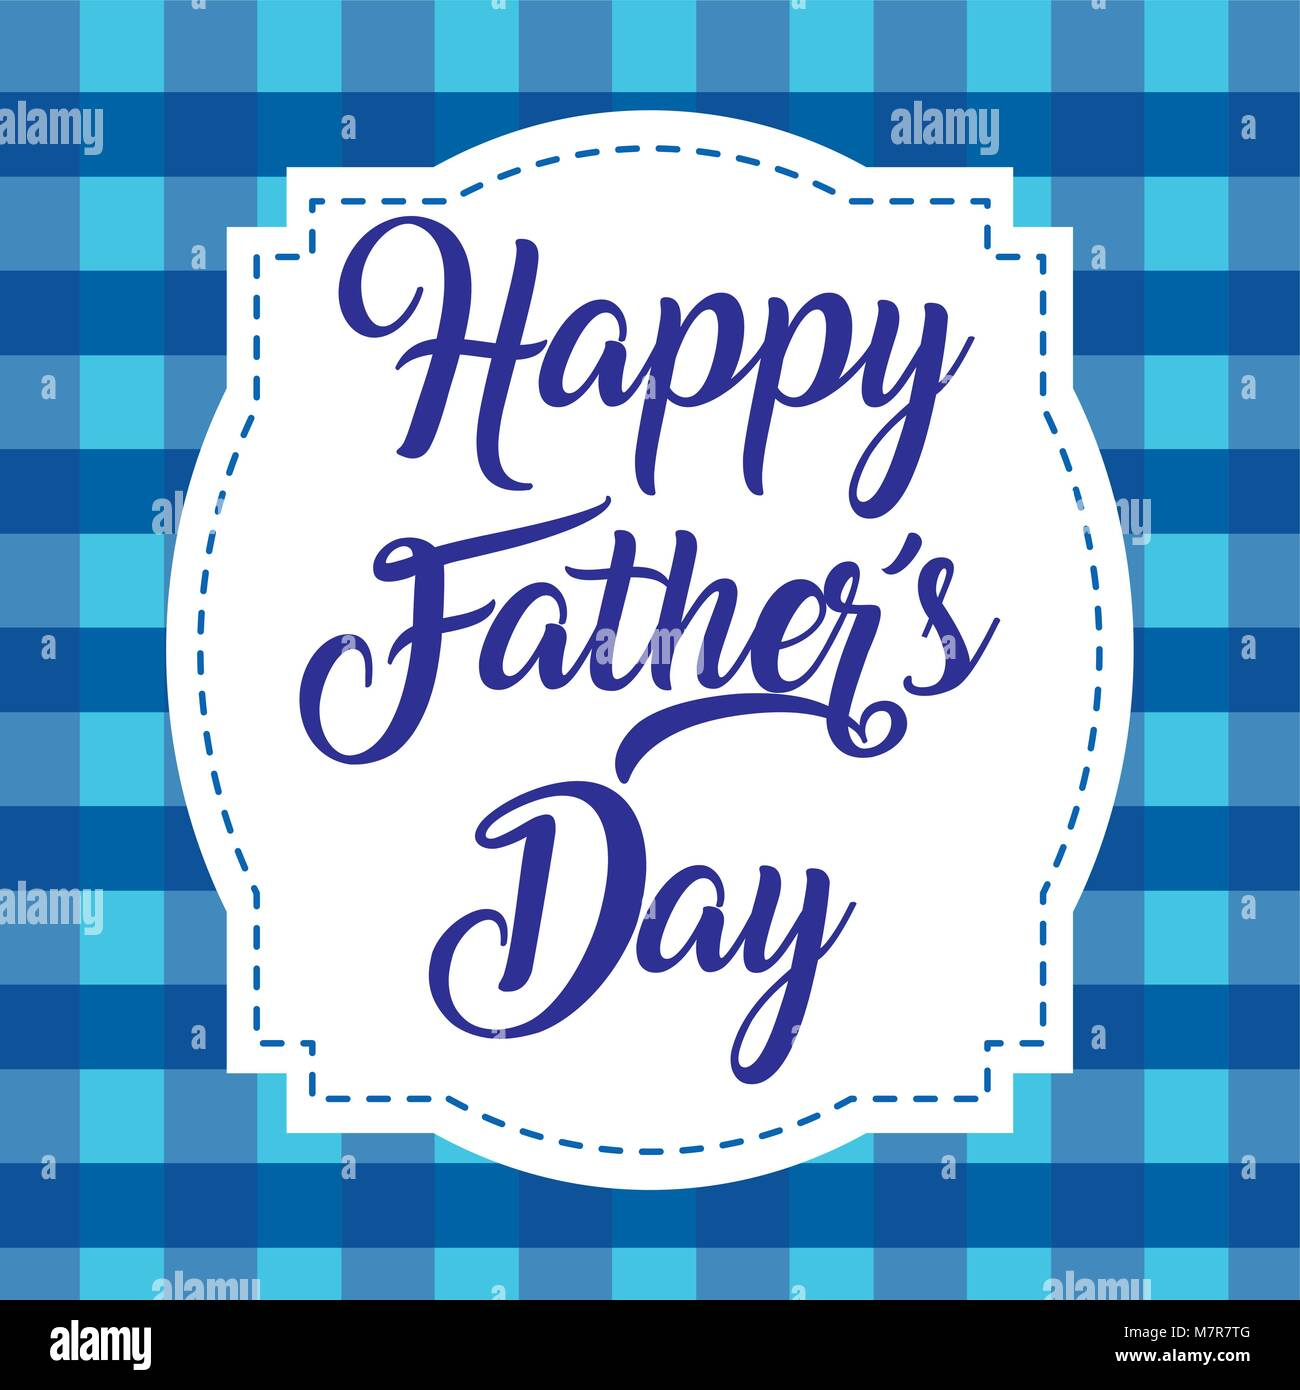 happy fathers day - Stock Image